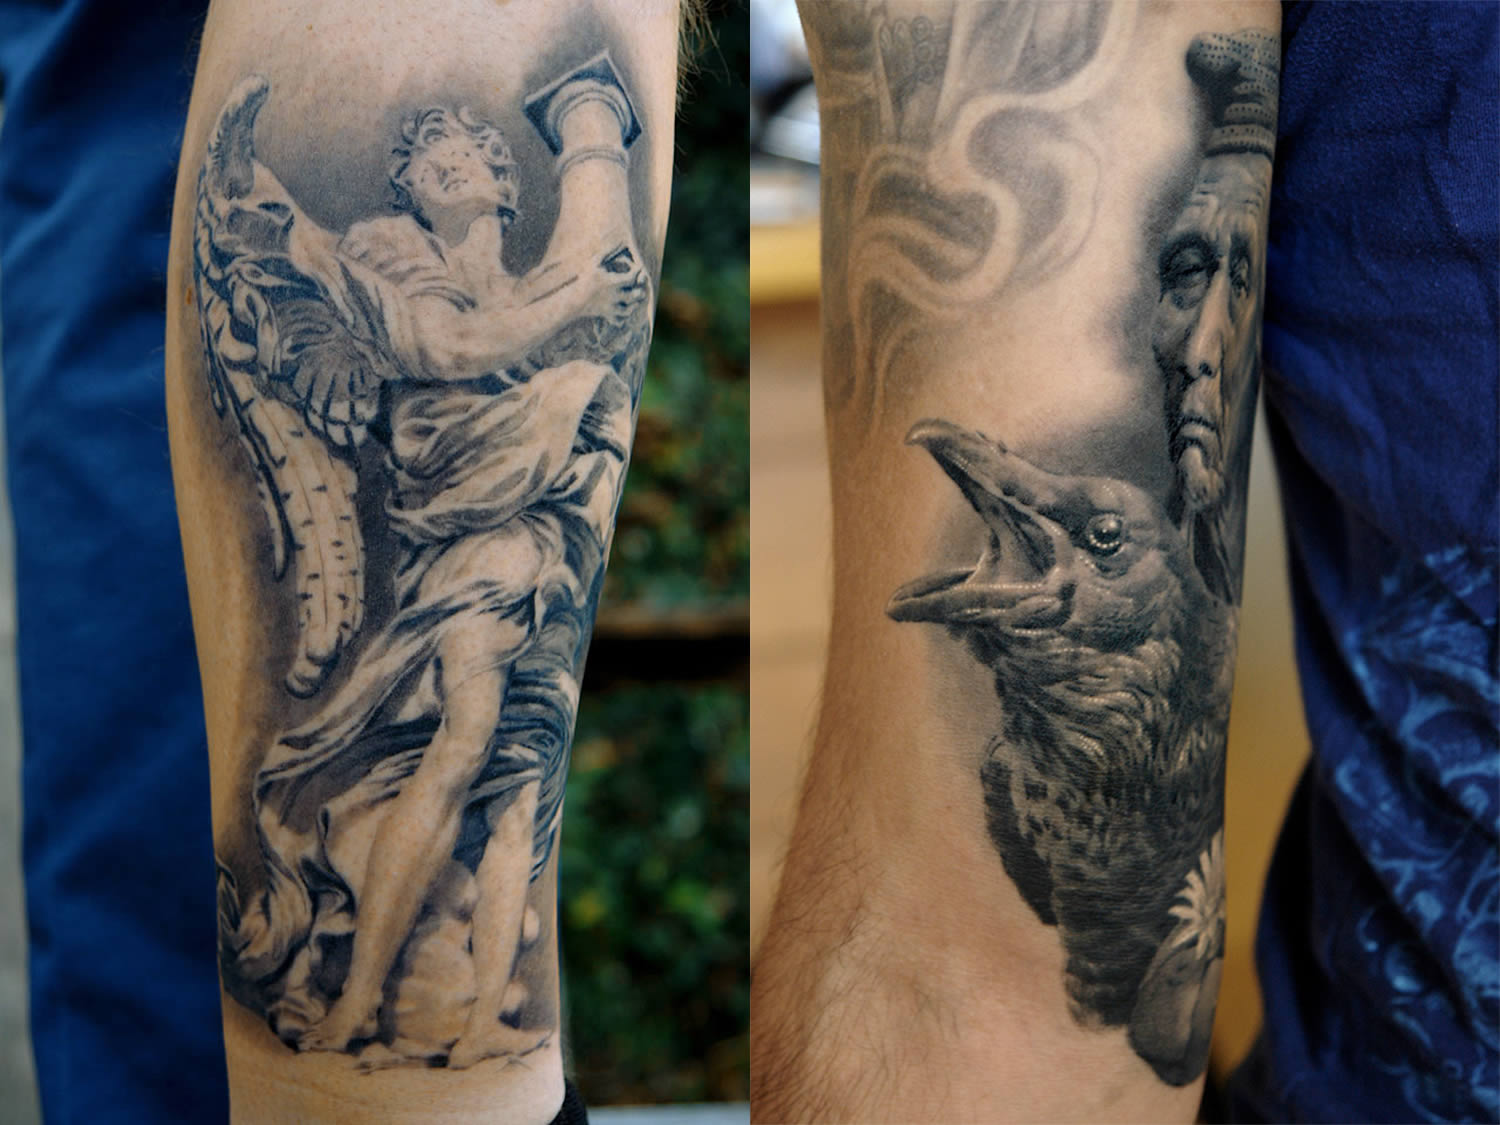 sculpture and bird and woman tattoos by Sergio Sanchez